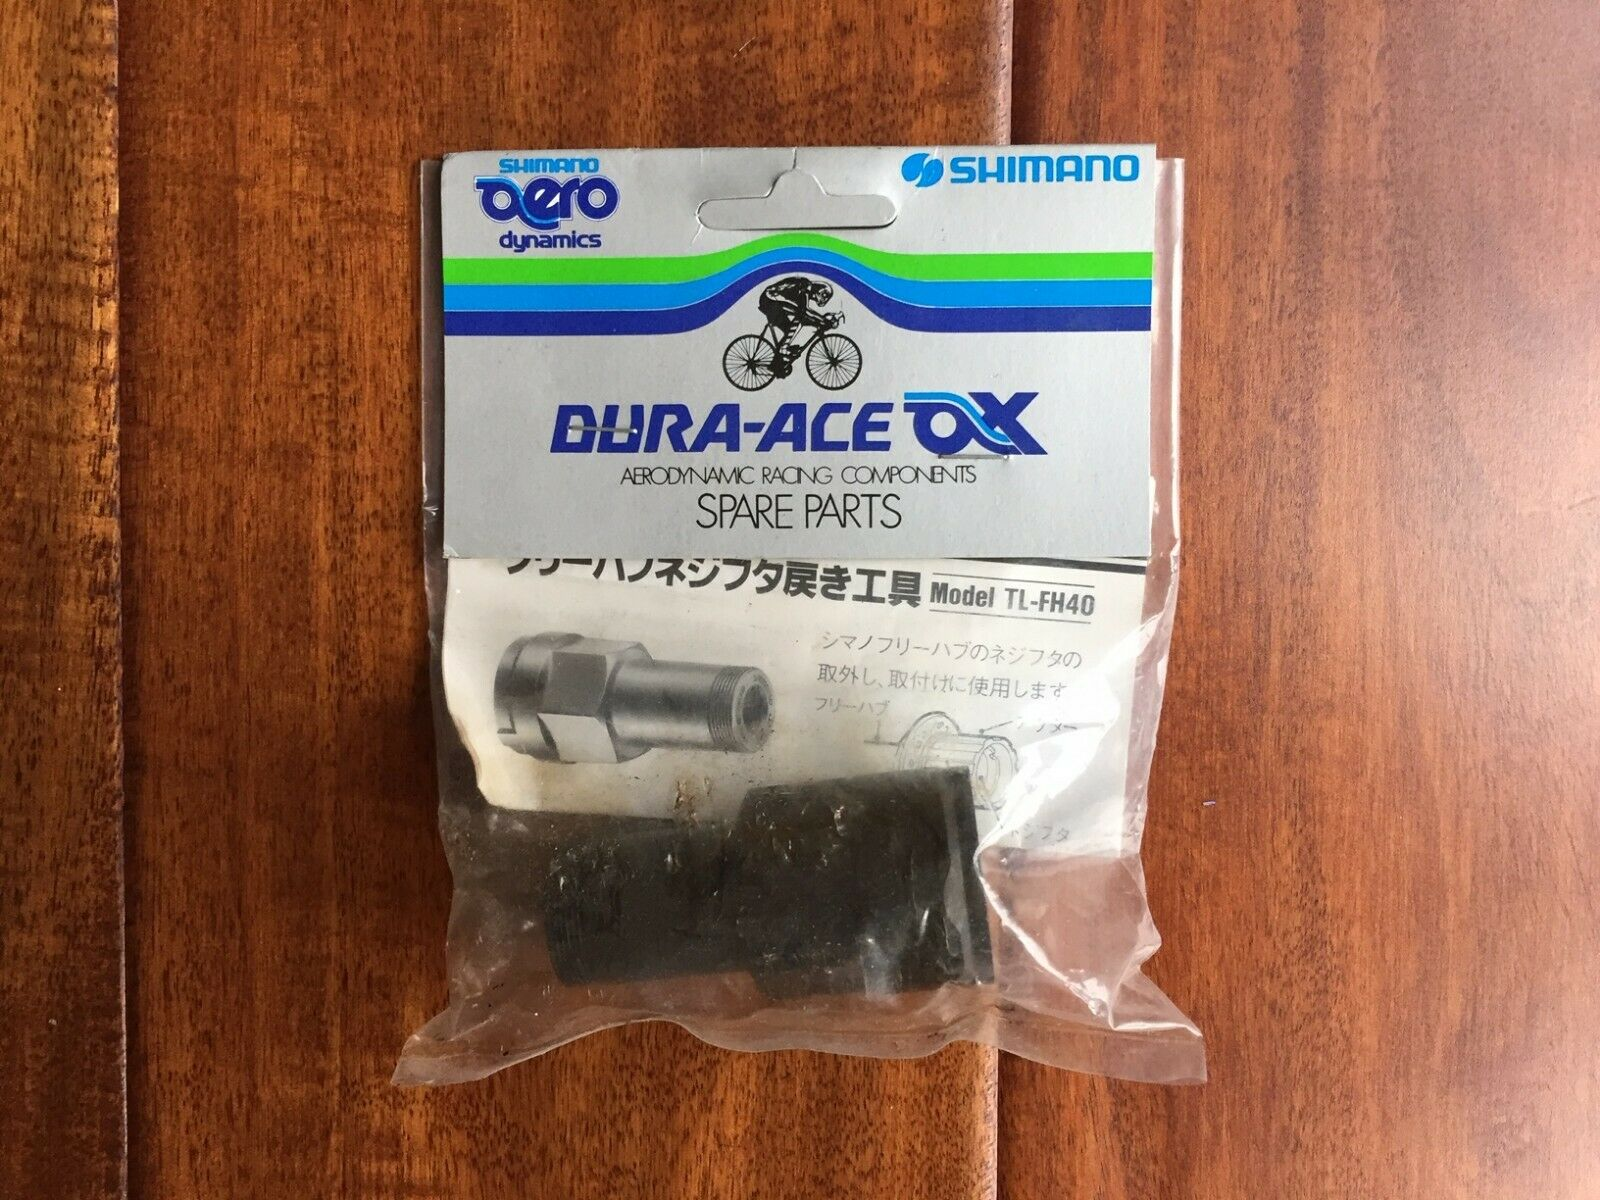 Shimano Dura-Ace AX TL-FH40 Freehub  Removal Tool  brands online cheap sale